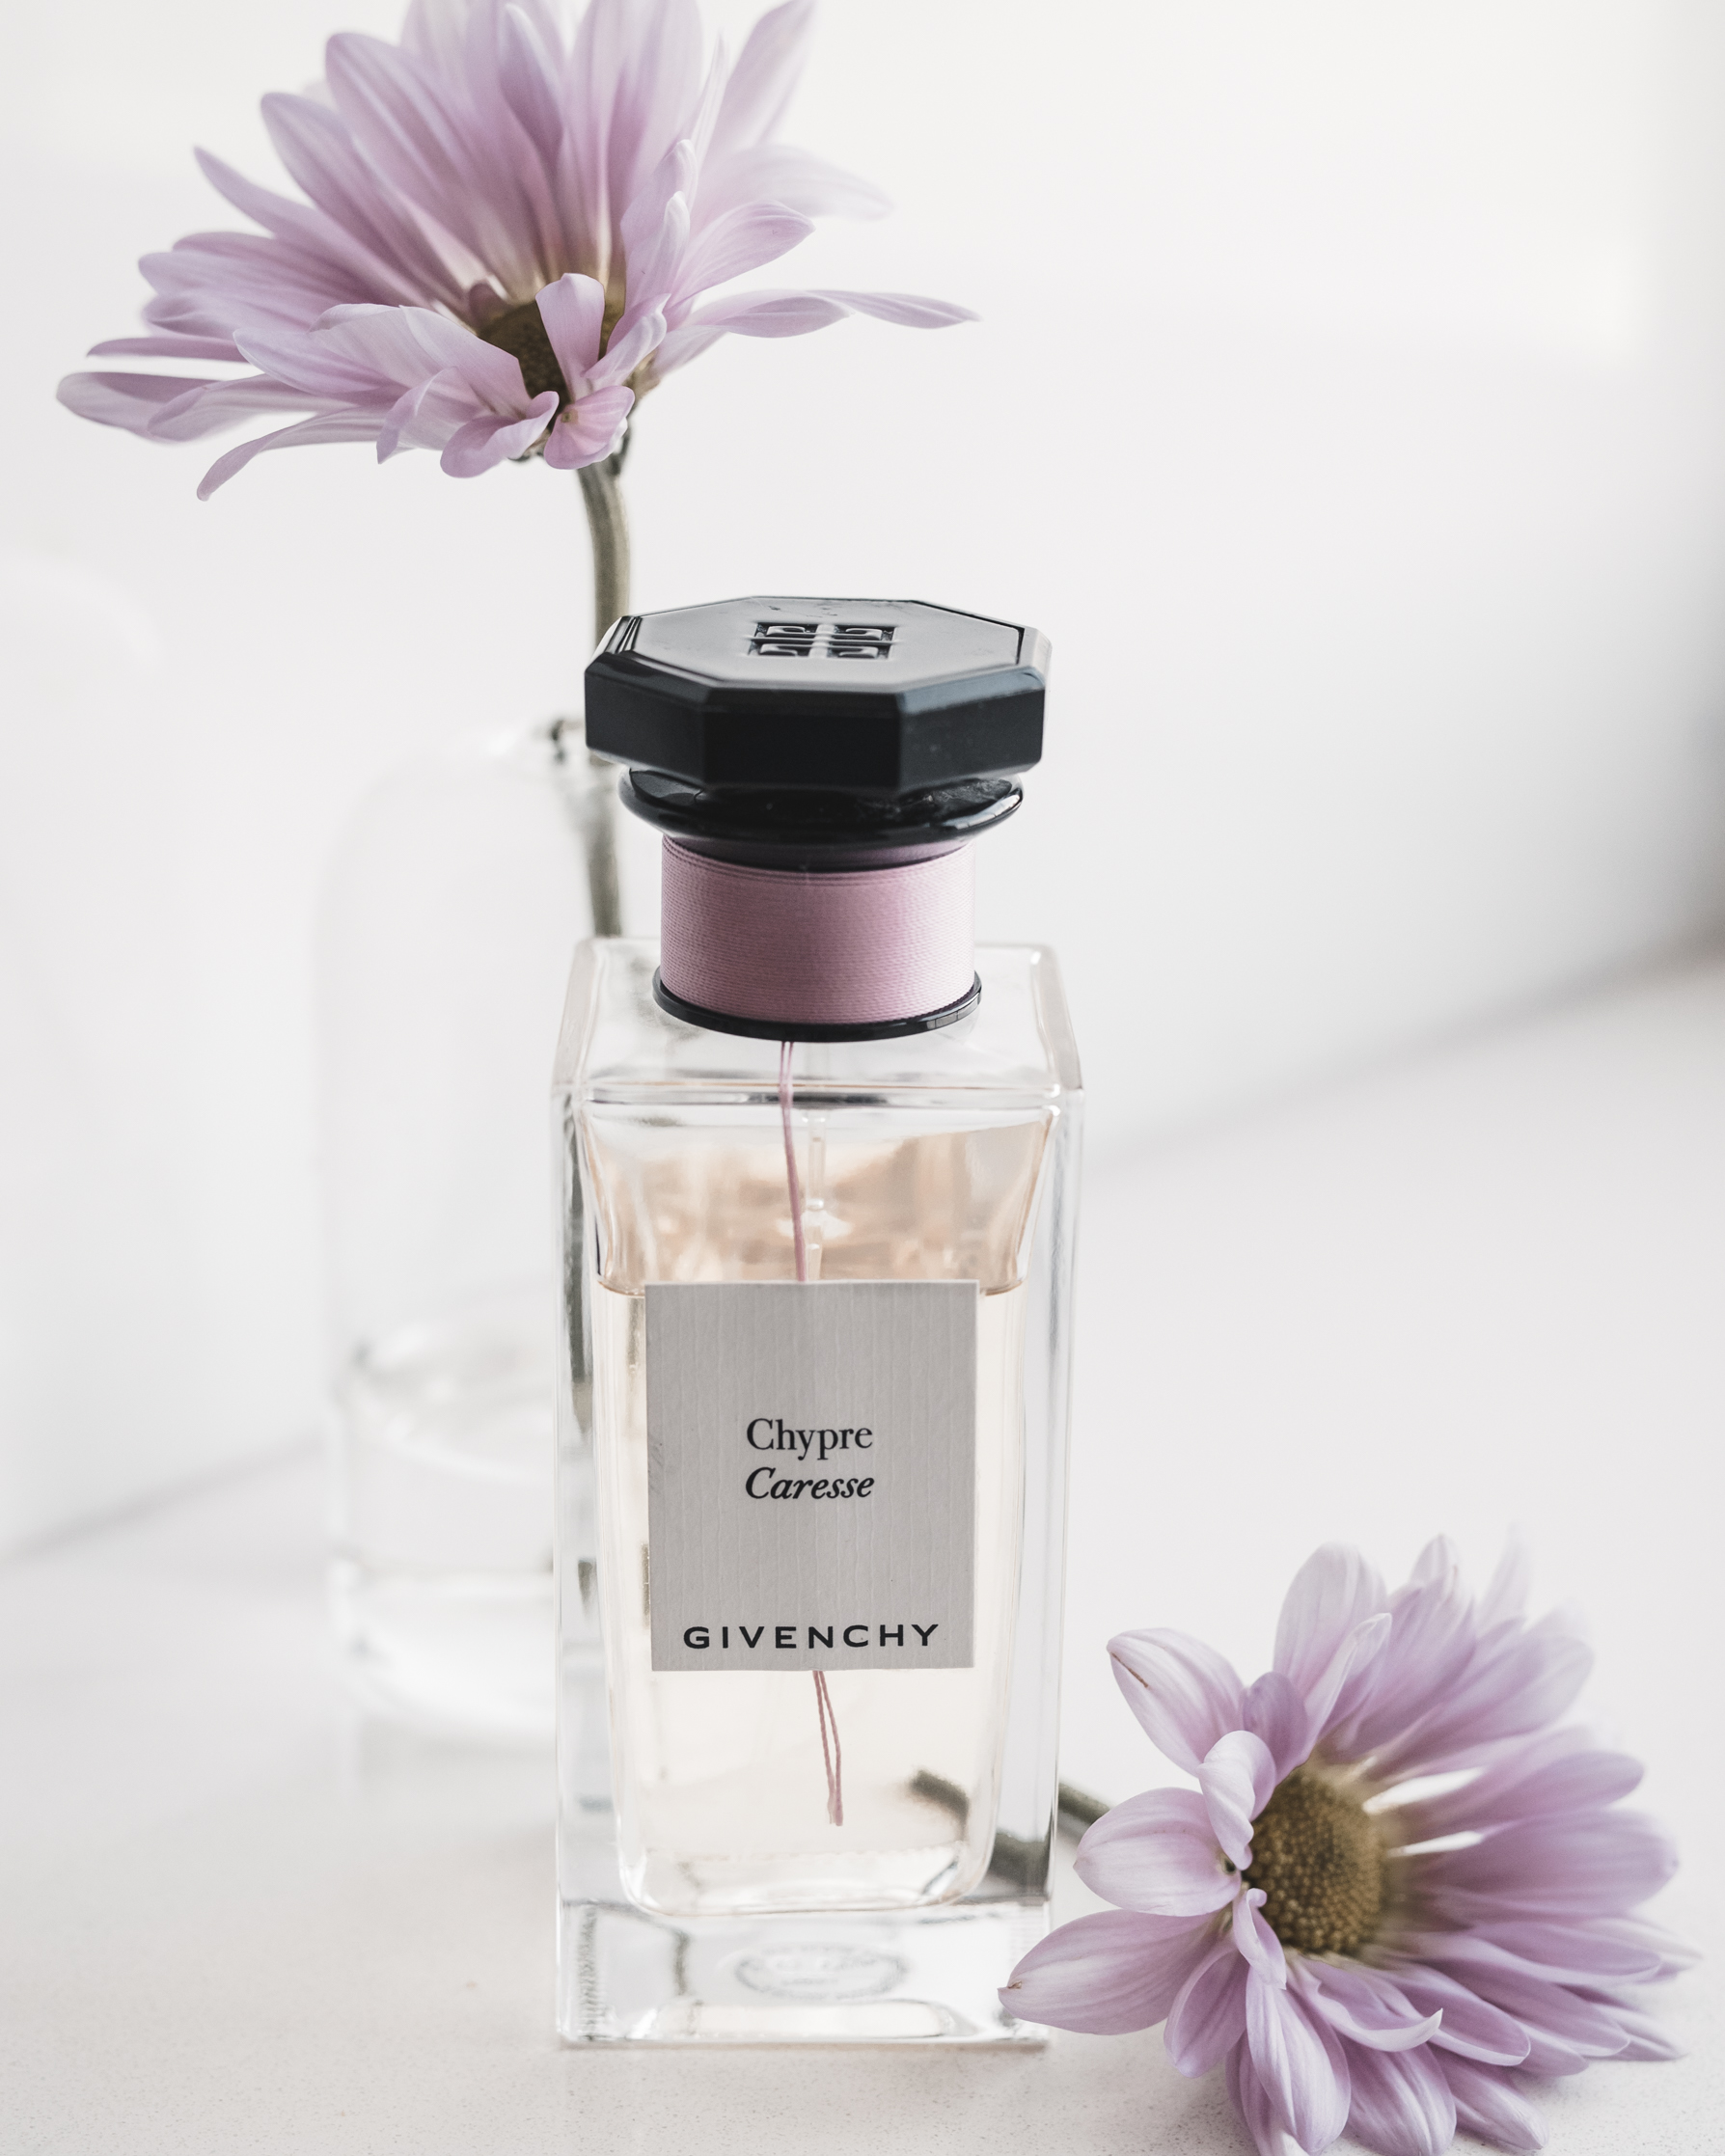 Chypre Caresse - Givenchy